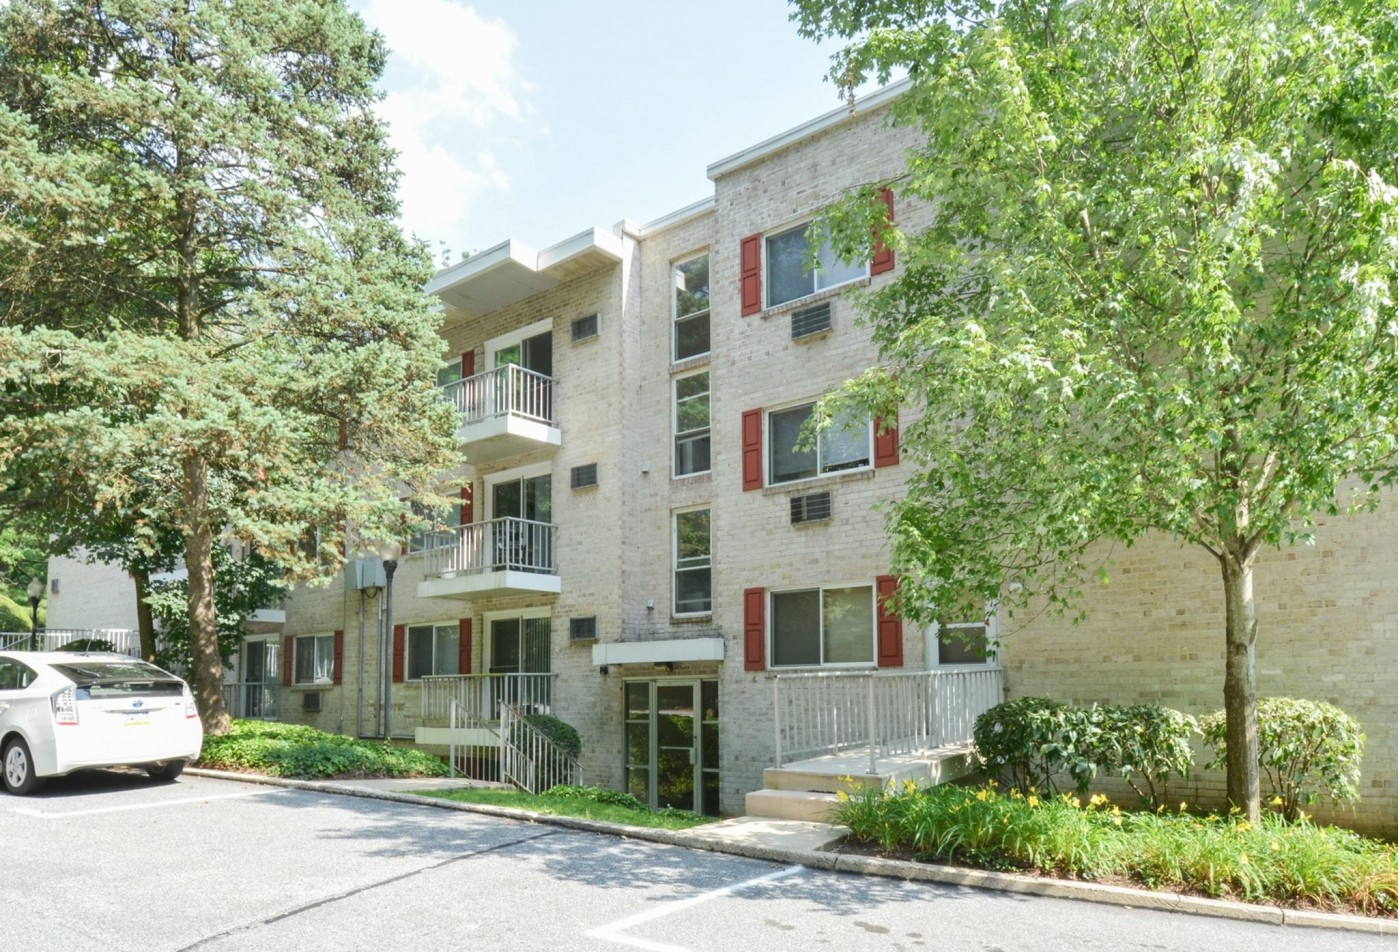 Apartment Homes in Media, PA | Gayley Park Apartments